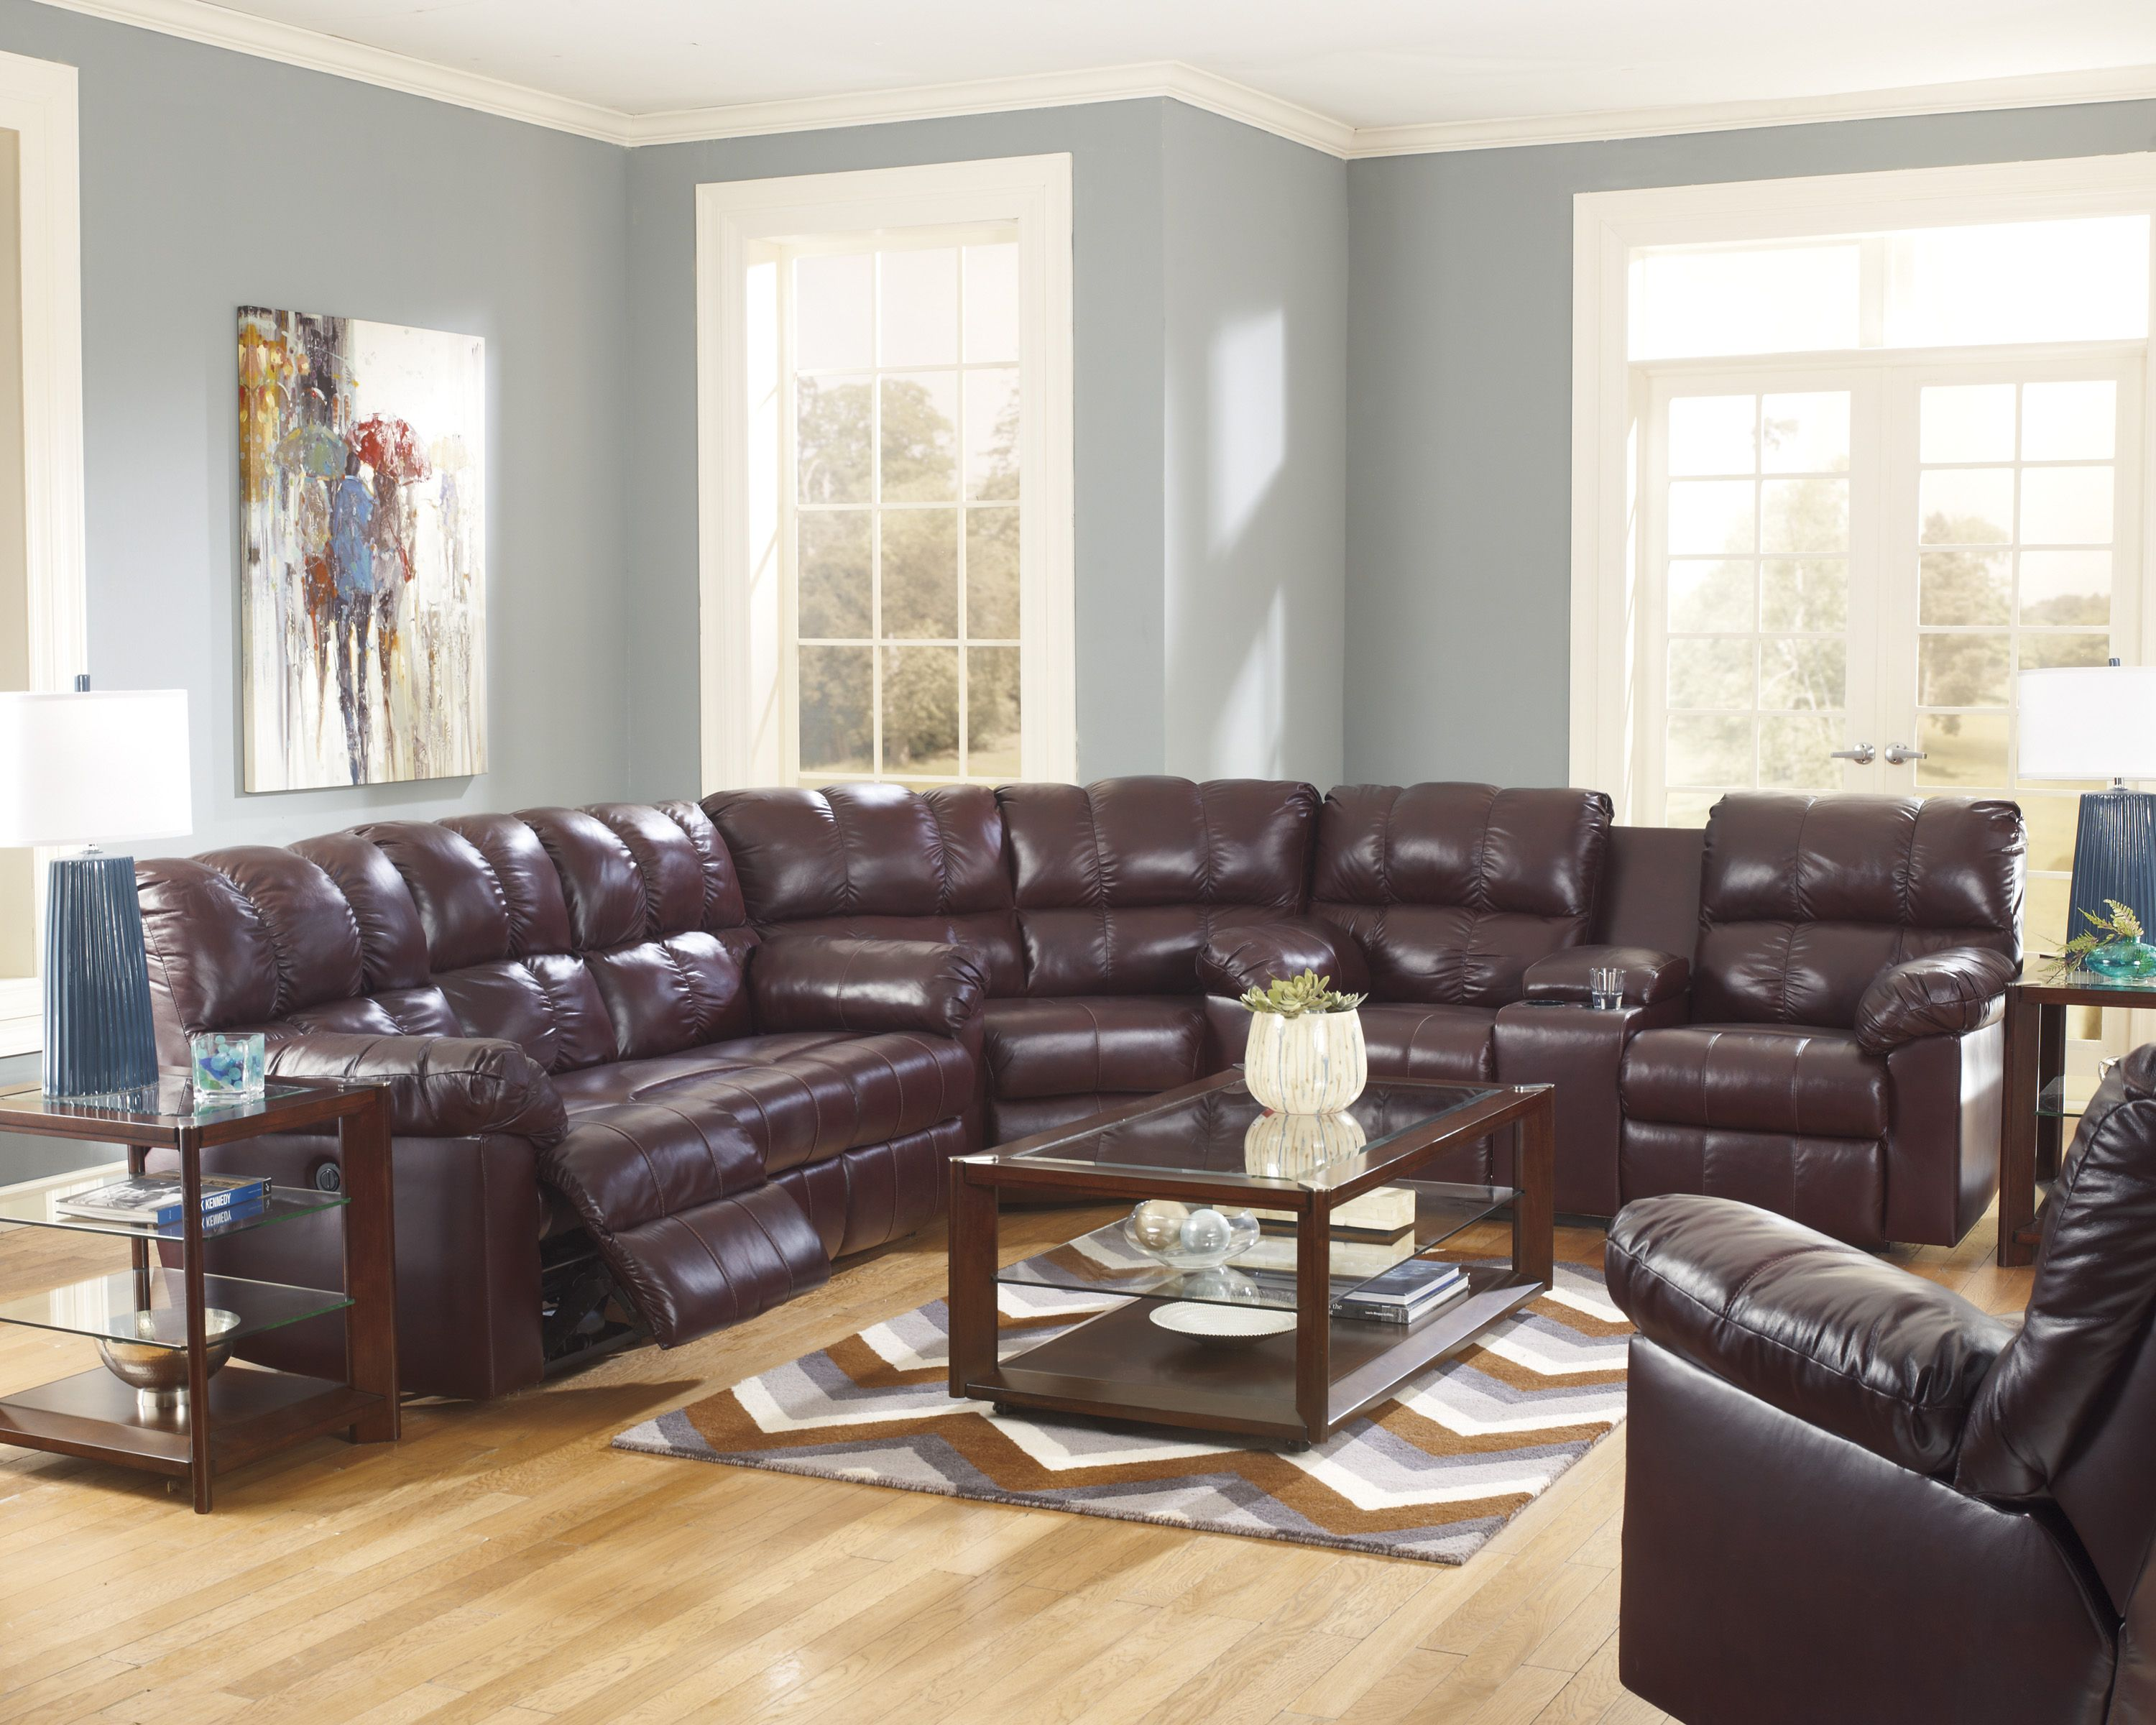 set mocha sofas sale coleman sofa magnificent concept loveseat from image living sets livings leather montgomery furniture room ashley